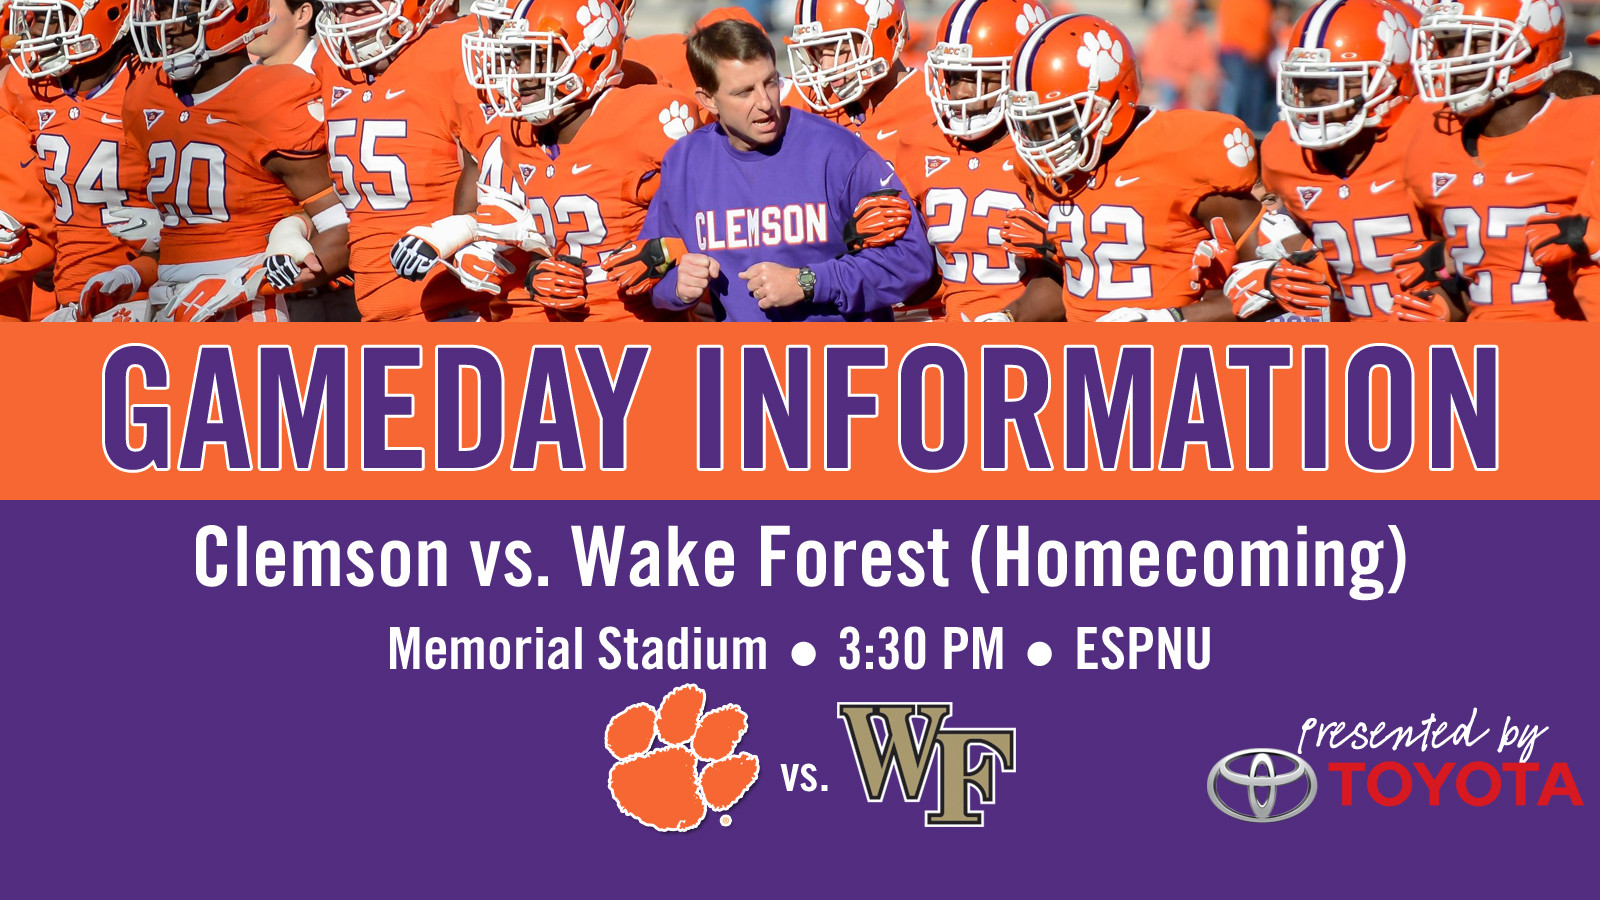 Clemson vs. Wake Forest Football Gameday Information Guide